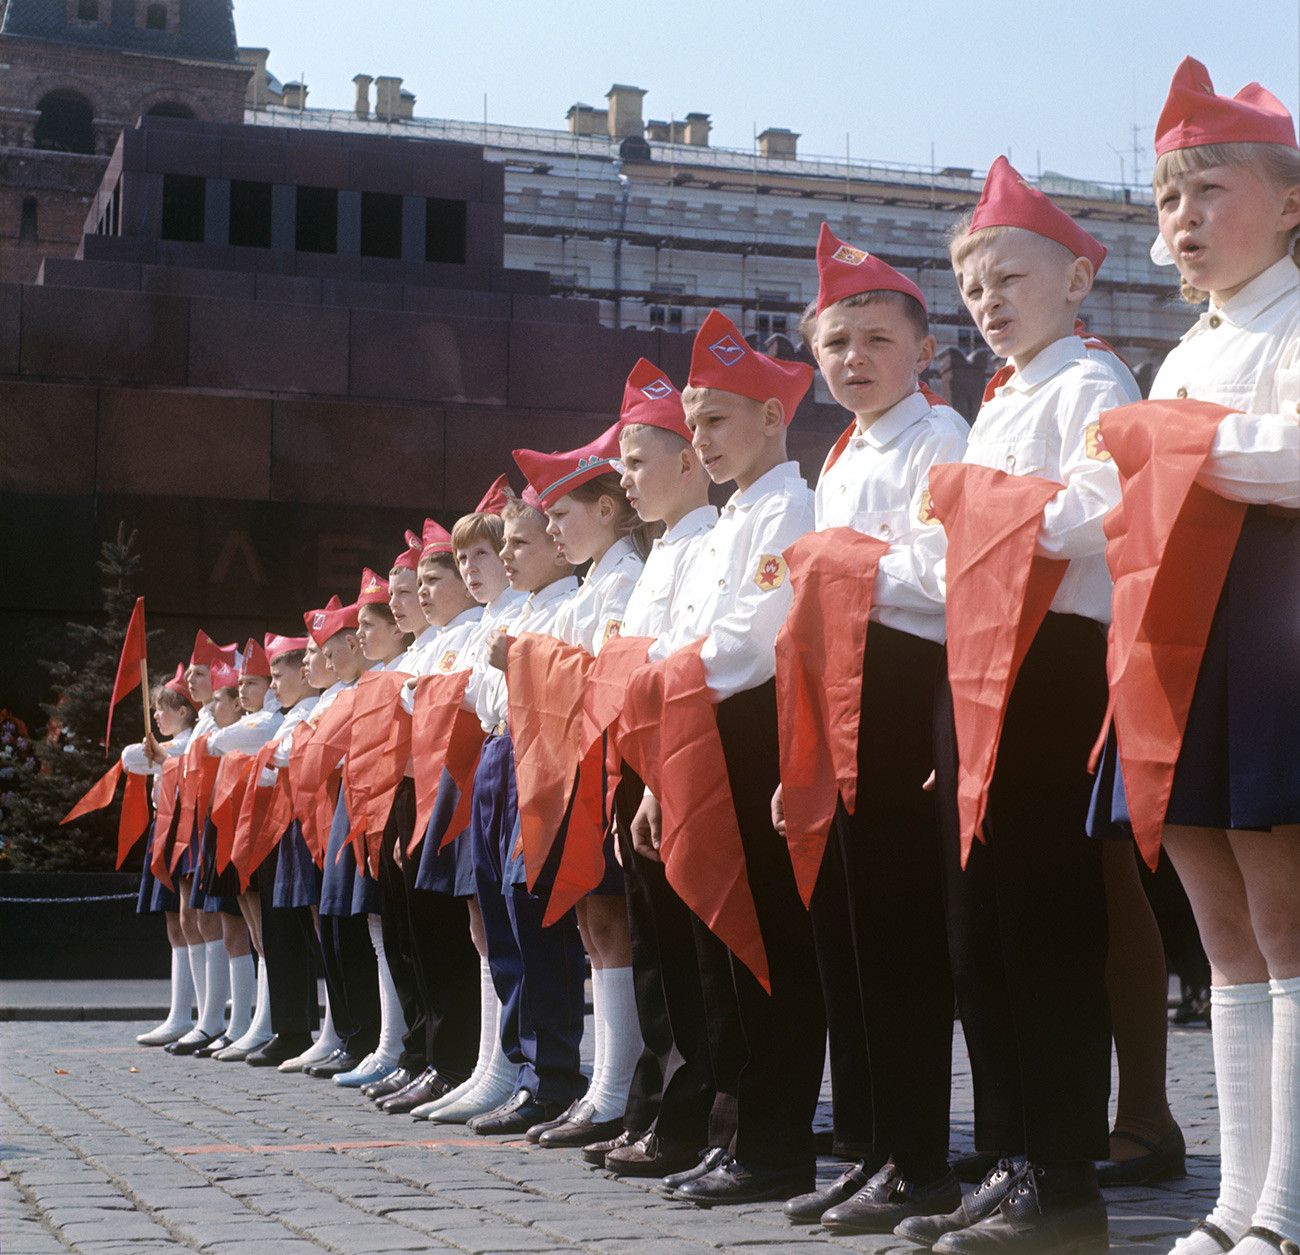 Children being recruited as Young Pioneers in the Red Square.